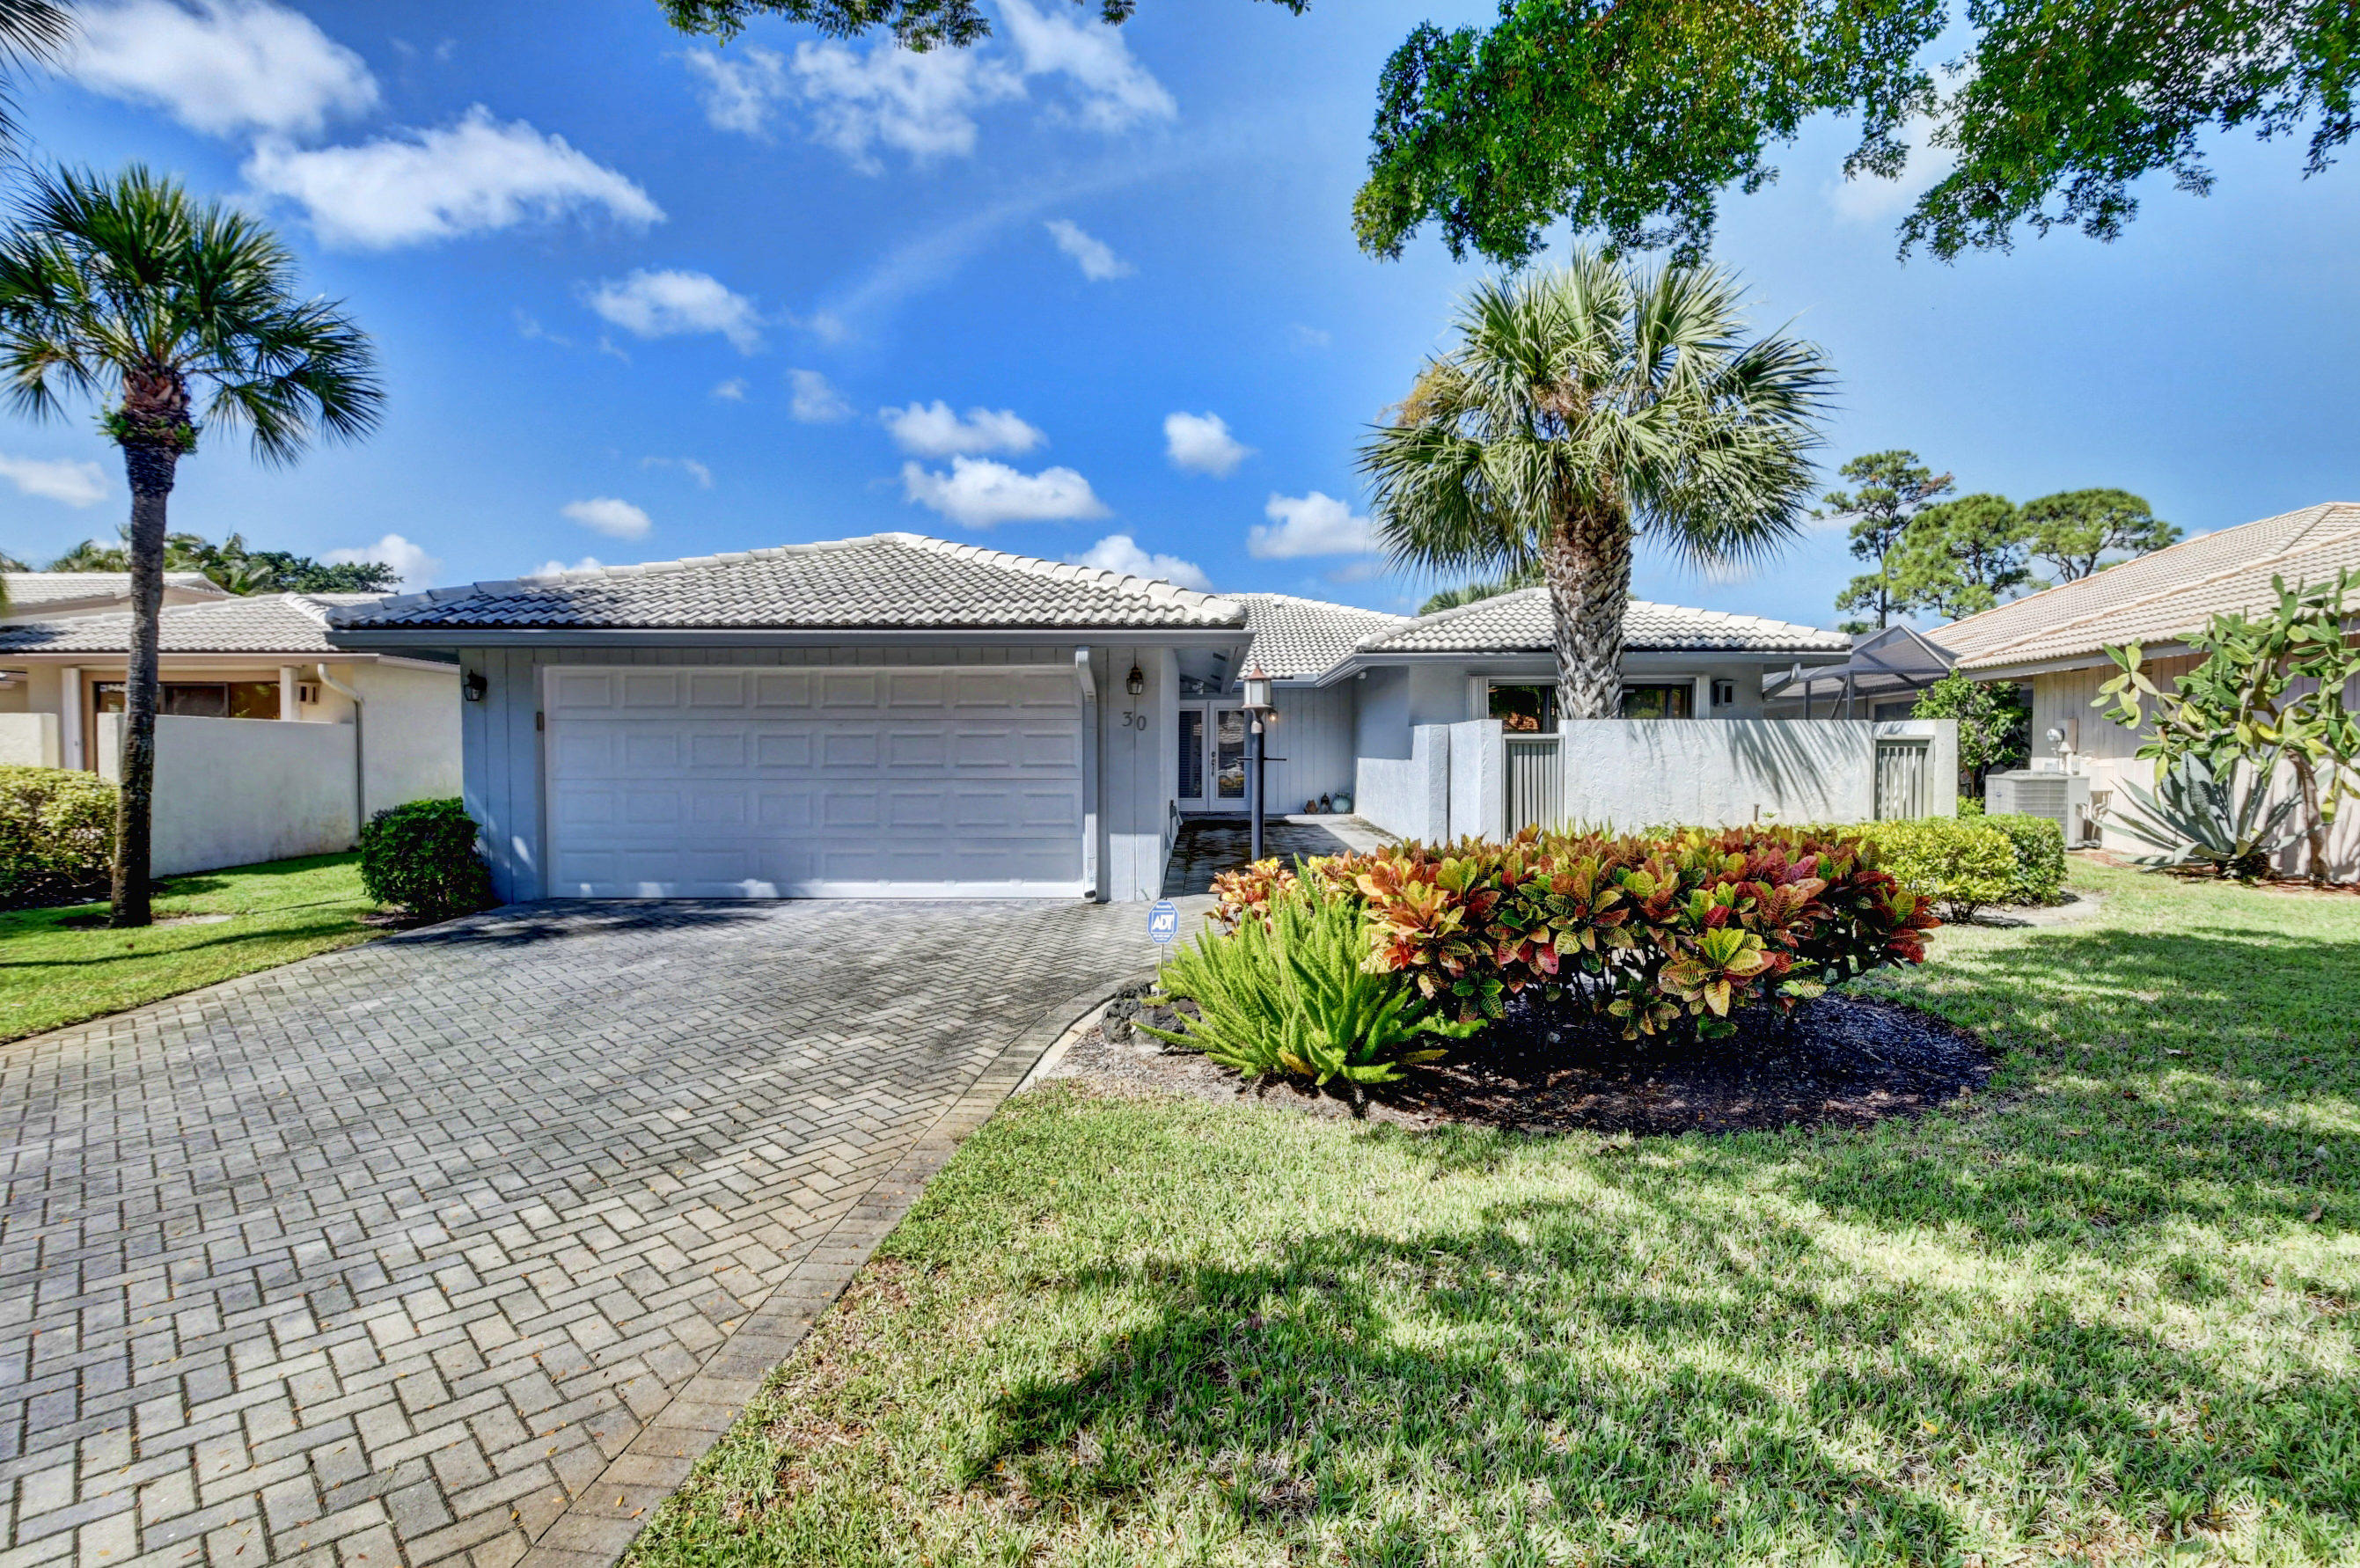 Details for 30 Glens Drive, Boynton Beach, FL 33436